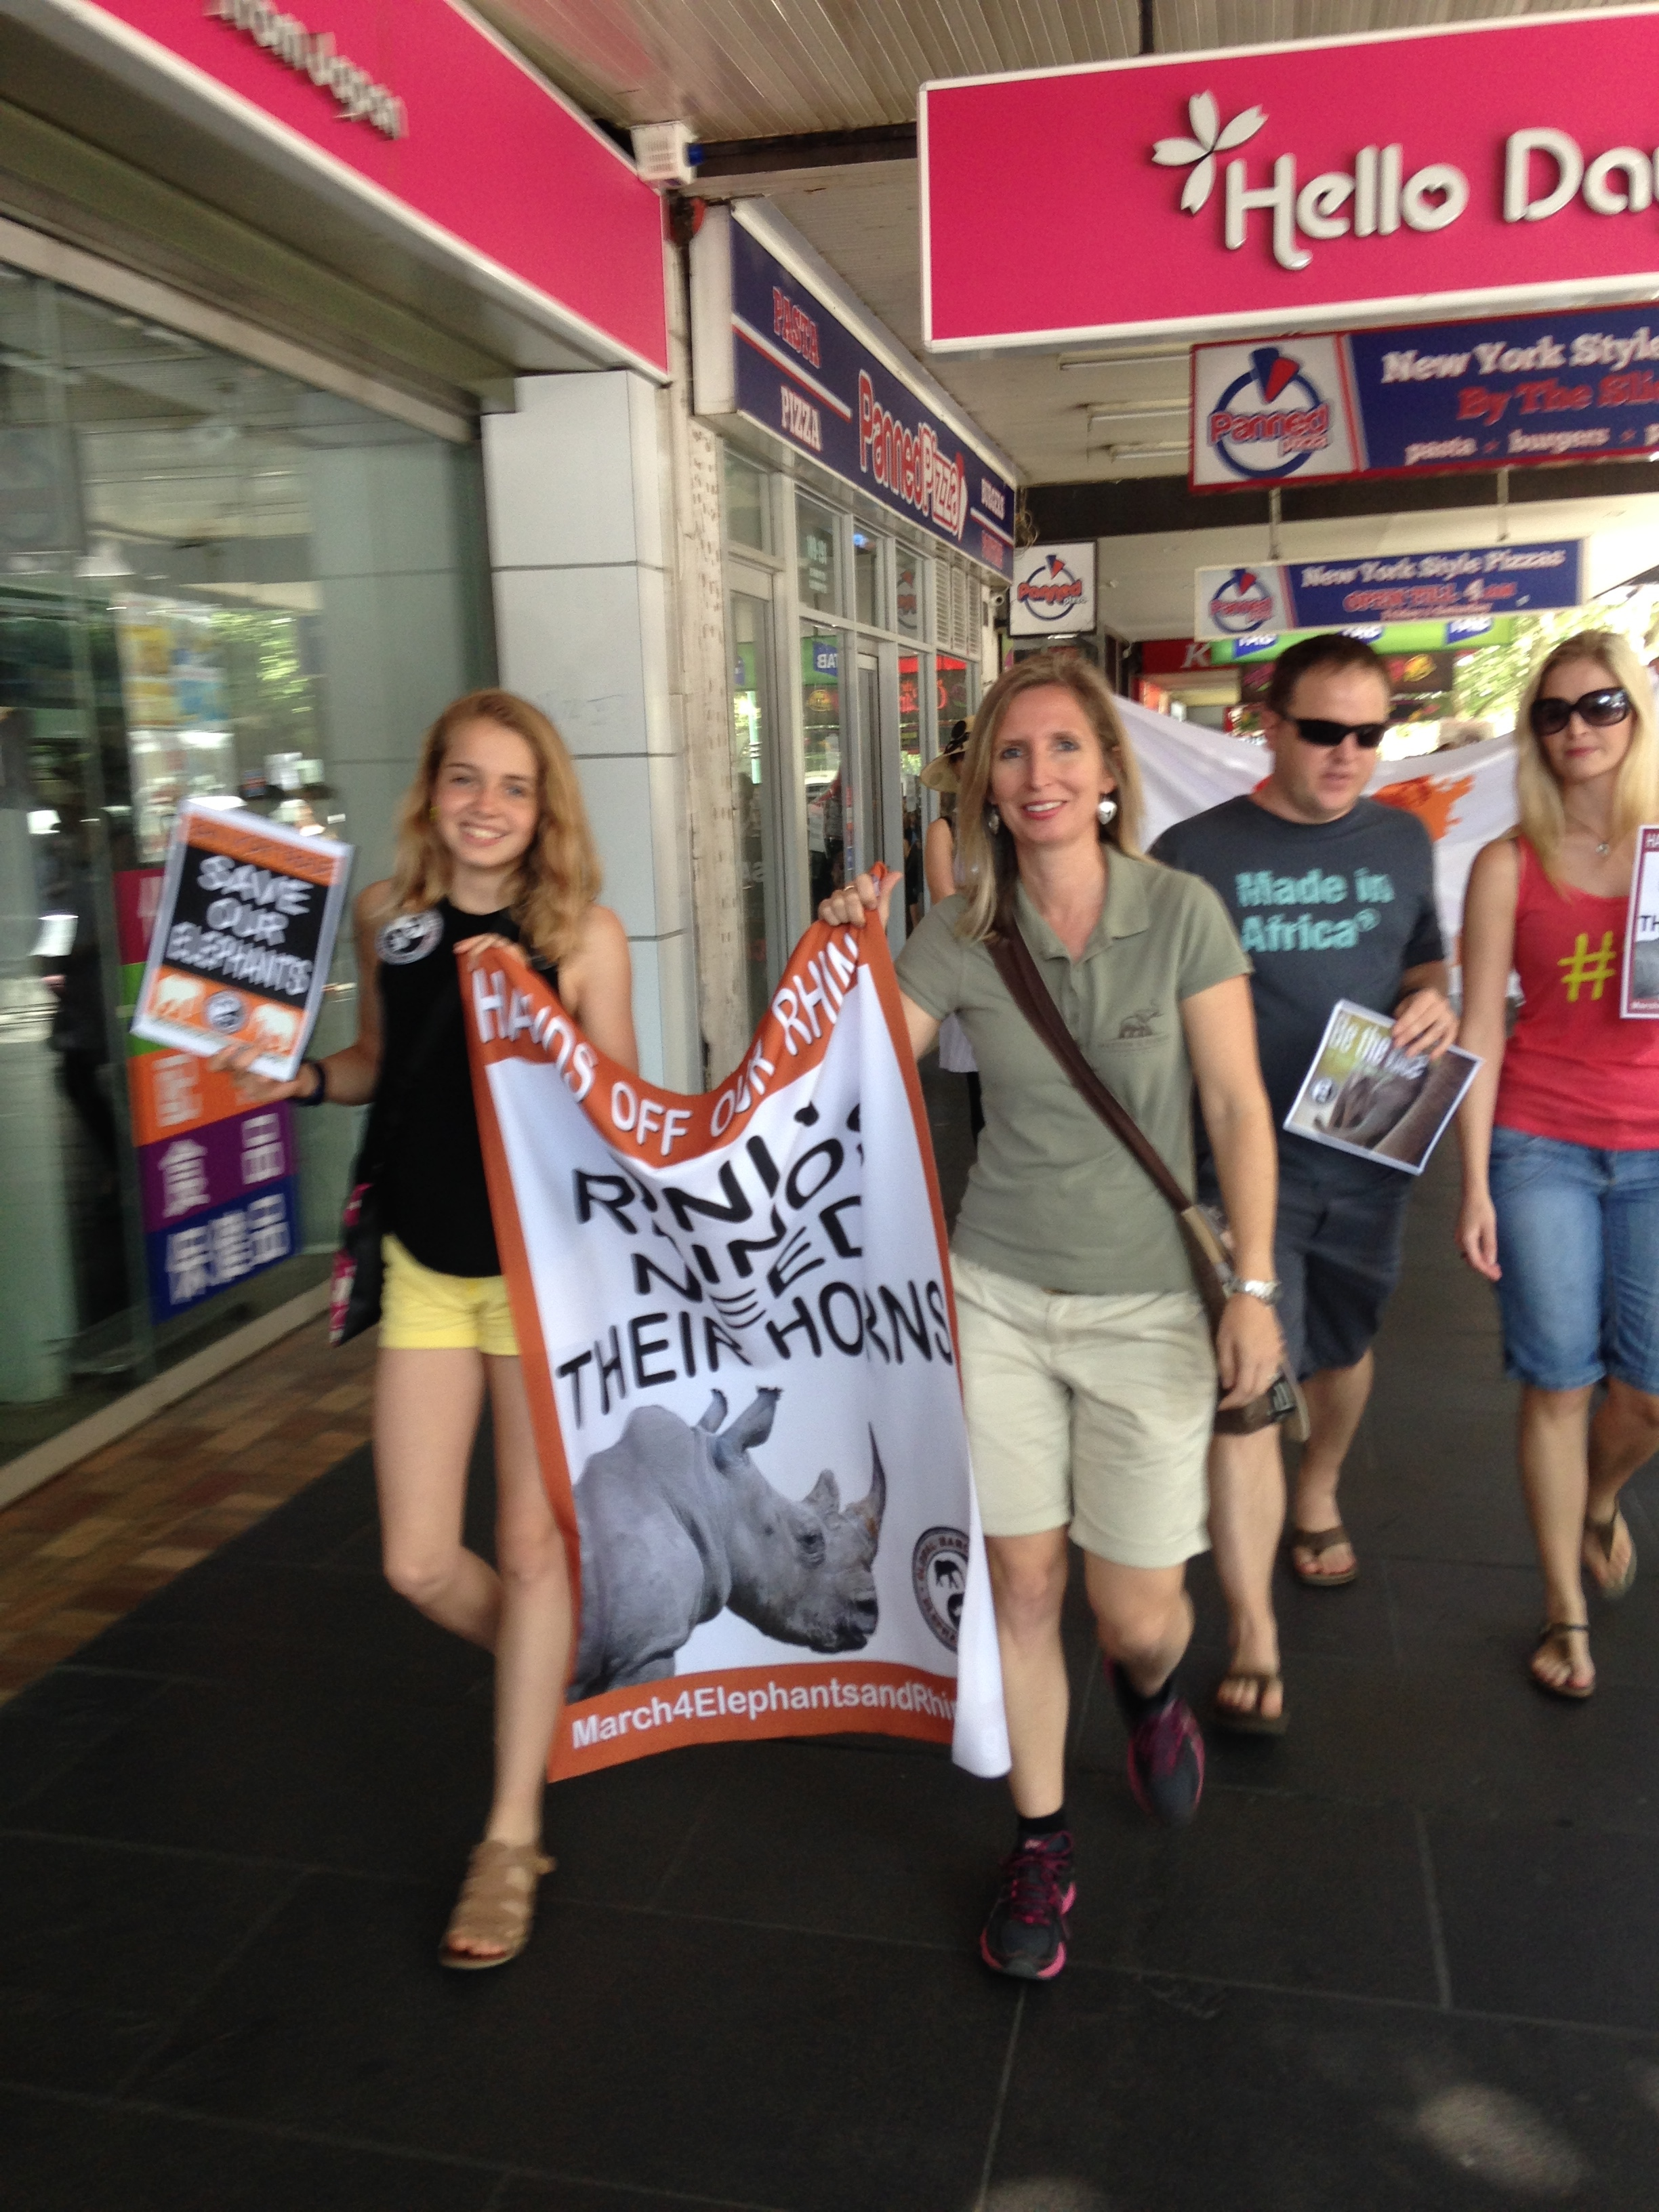 With 14 year old Alice Bertram, who joined me as a speaker at the Melbourne March For Elephants and Rhinos on 4th October